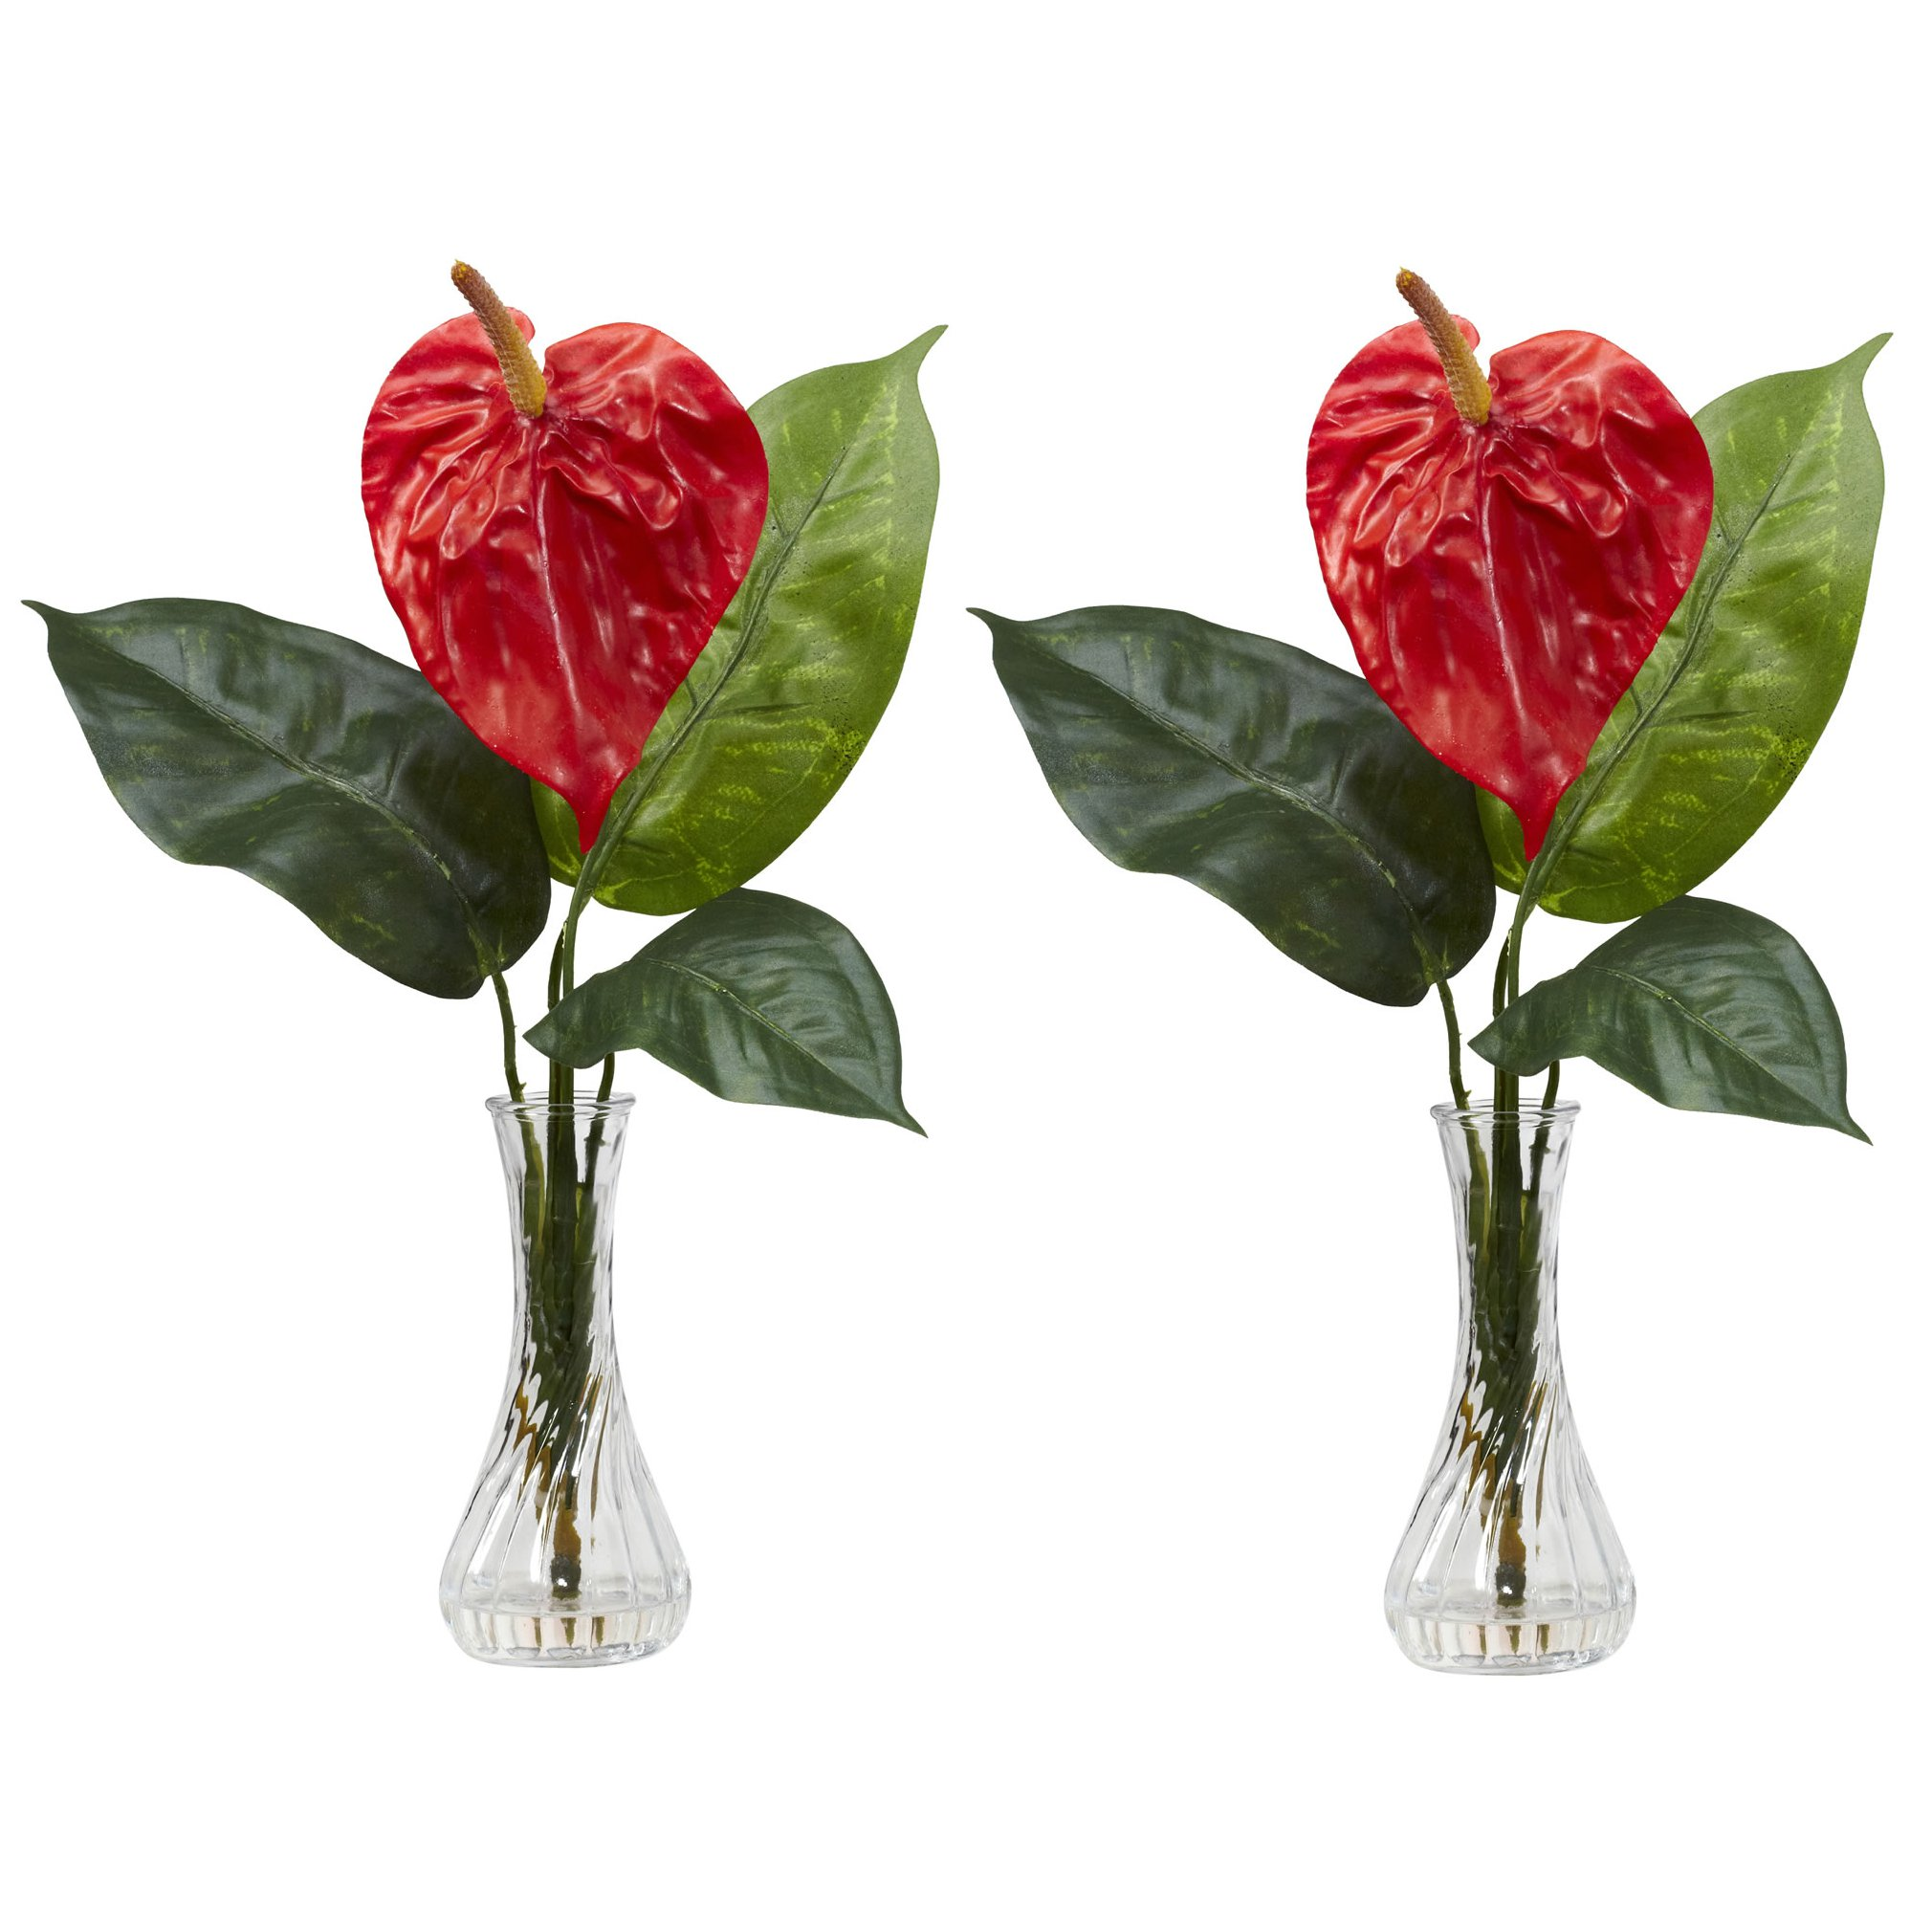 Silk Anthurium with Bud in Vase (Set of 2) 1286